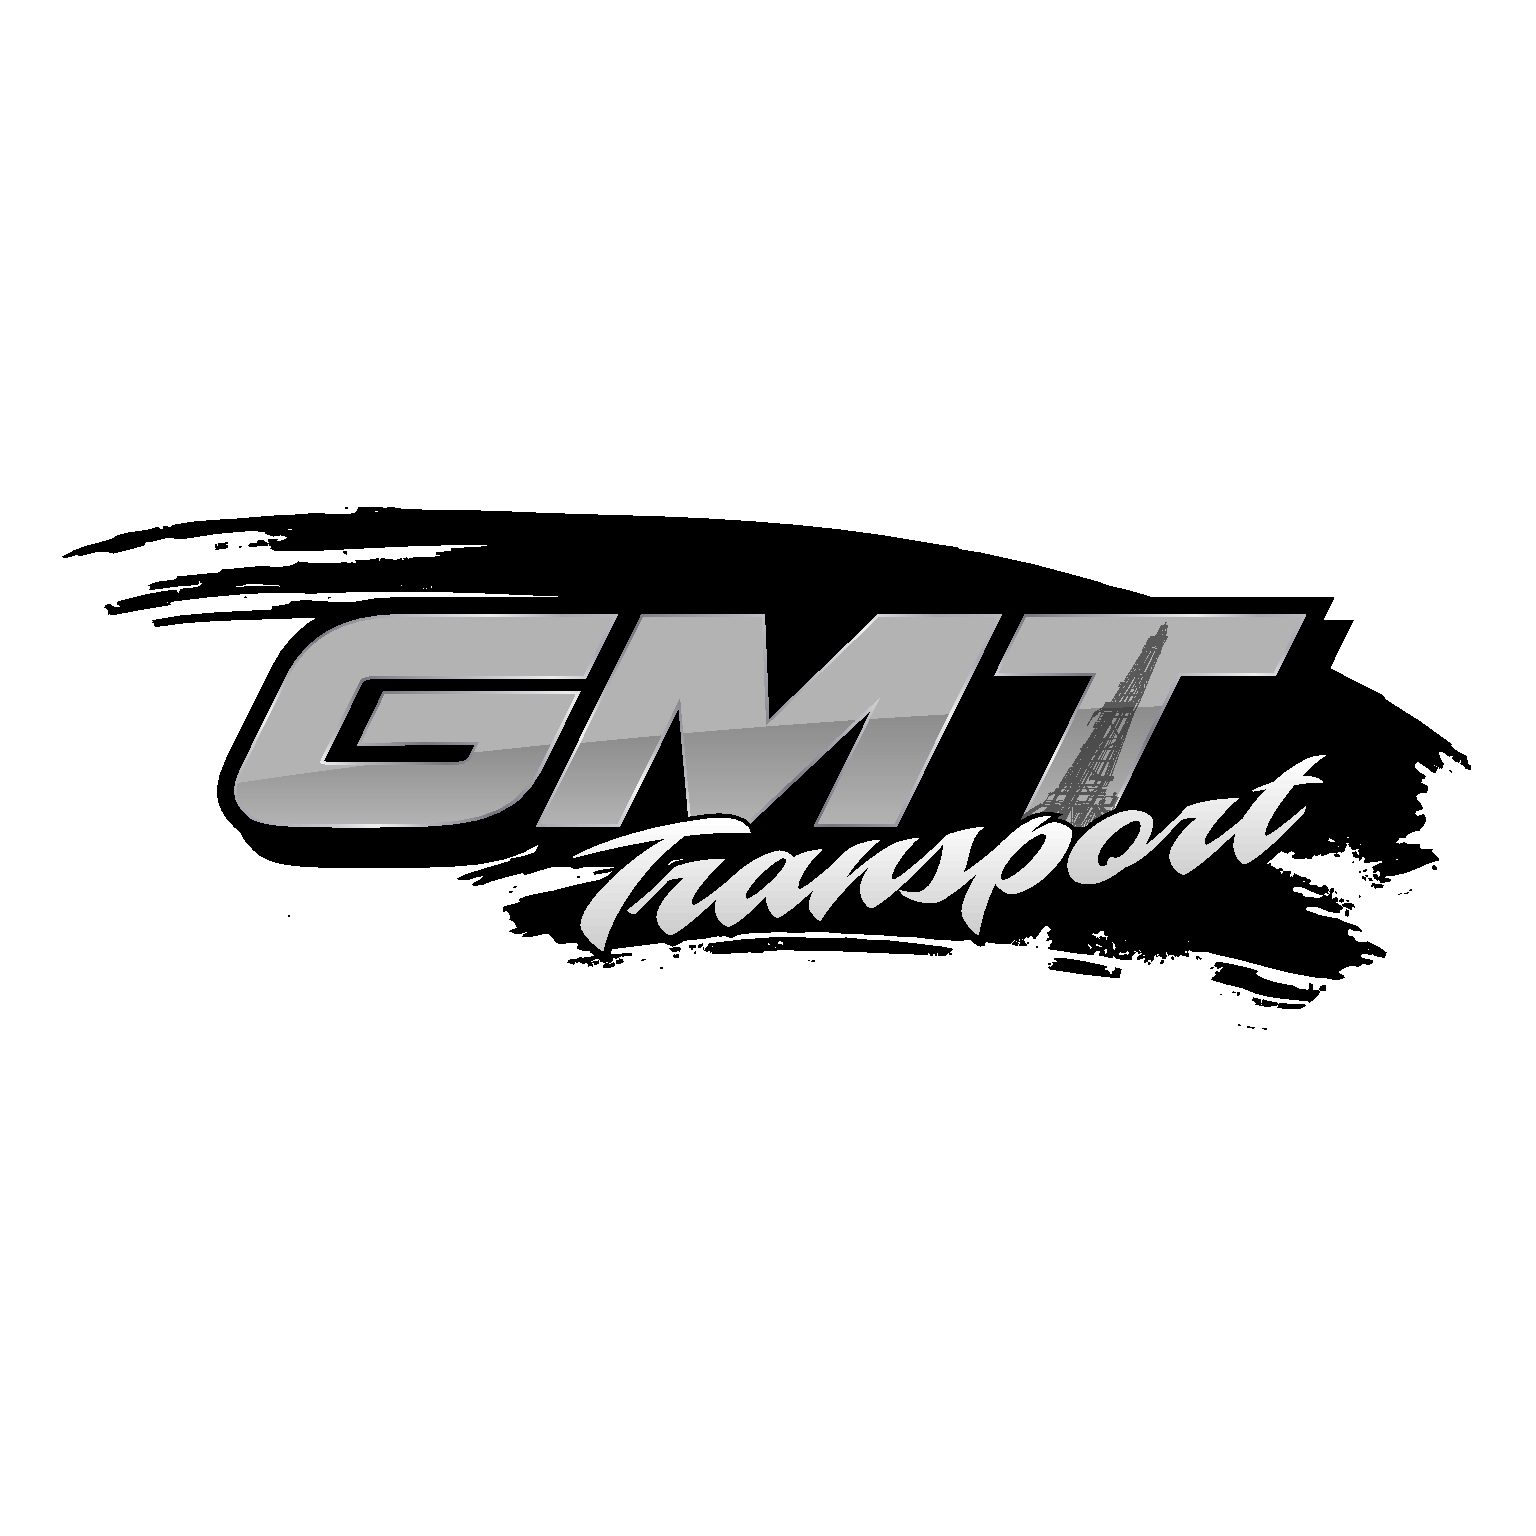 GMT TRANSPORT LOGO